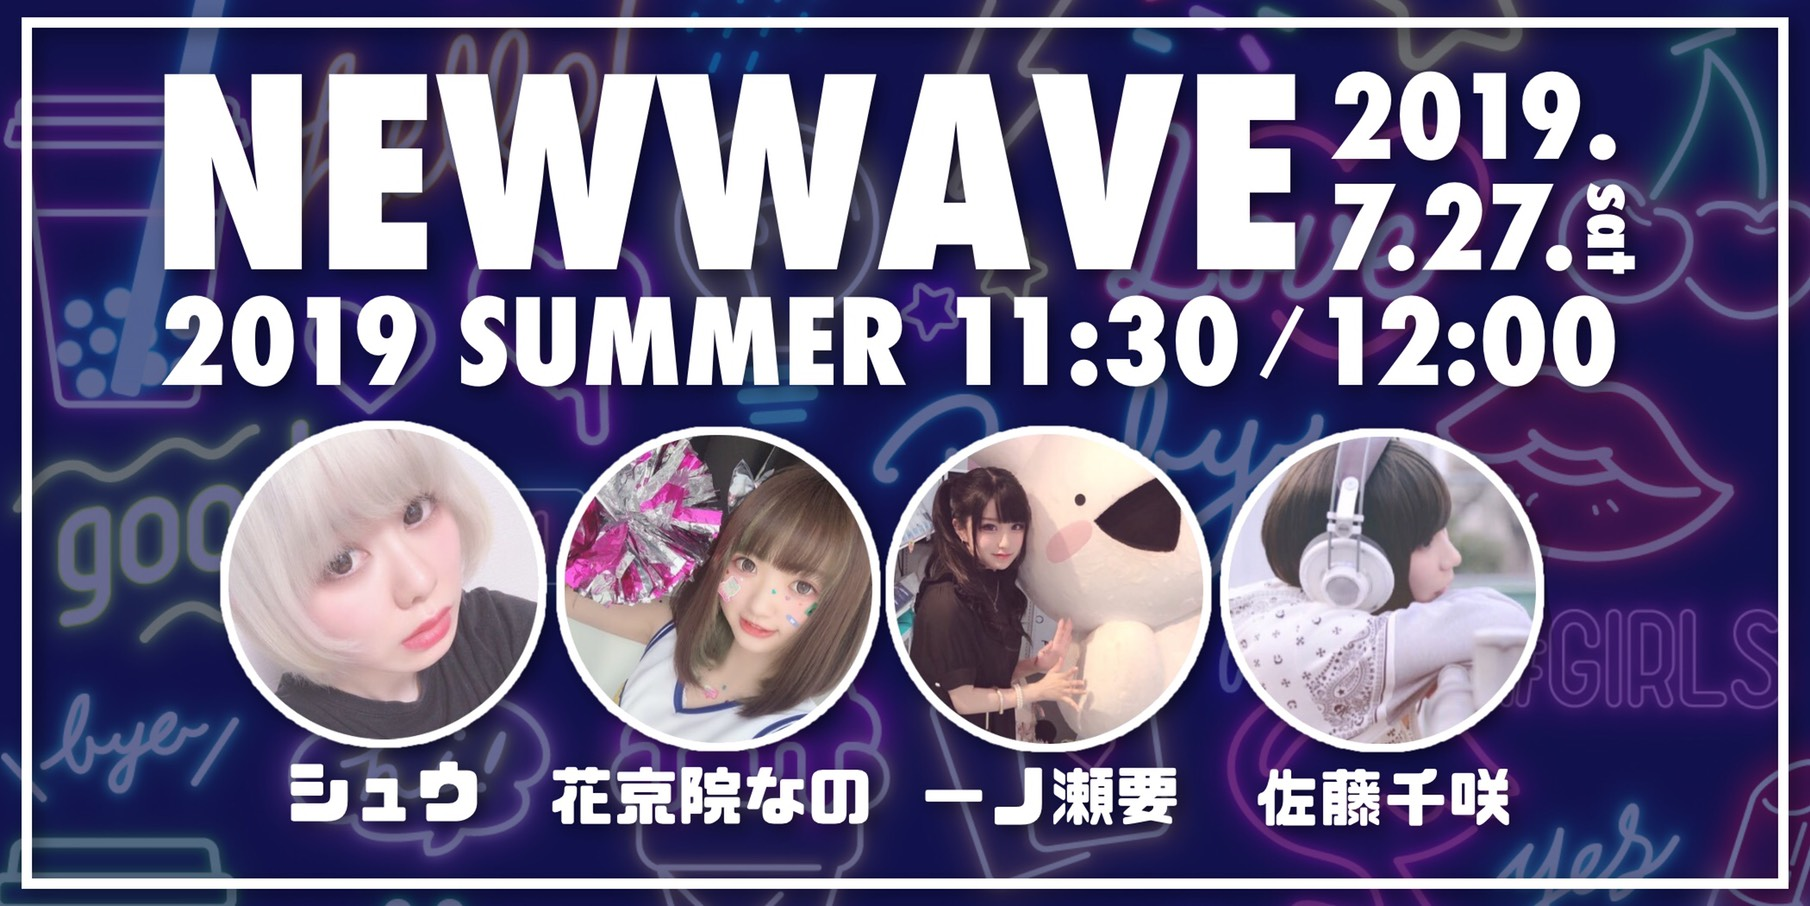 NEW WAVE 2019 SUMMER